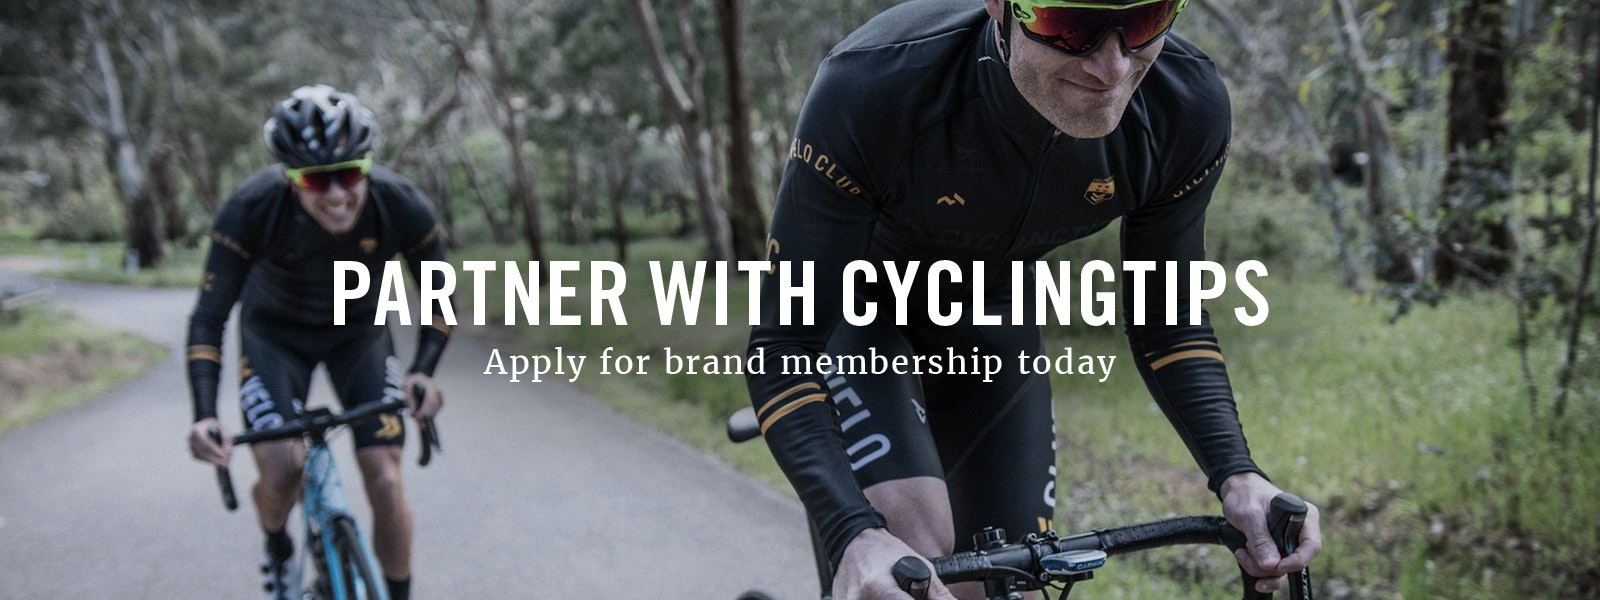 Apply For Brand Membership Today | CyclingTips Emporium Subscription